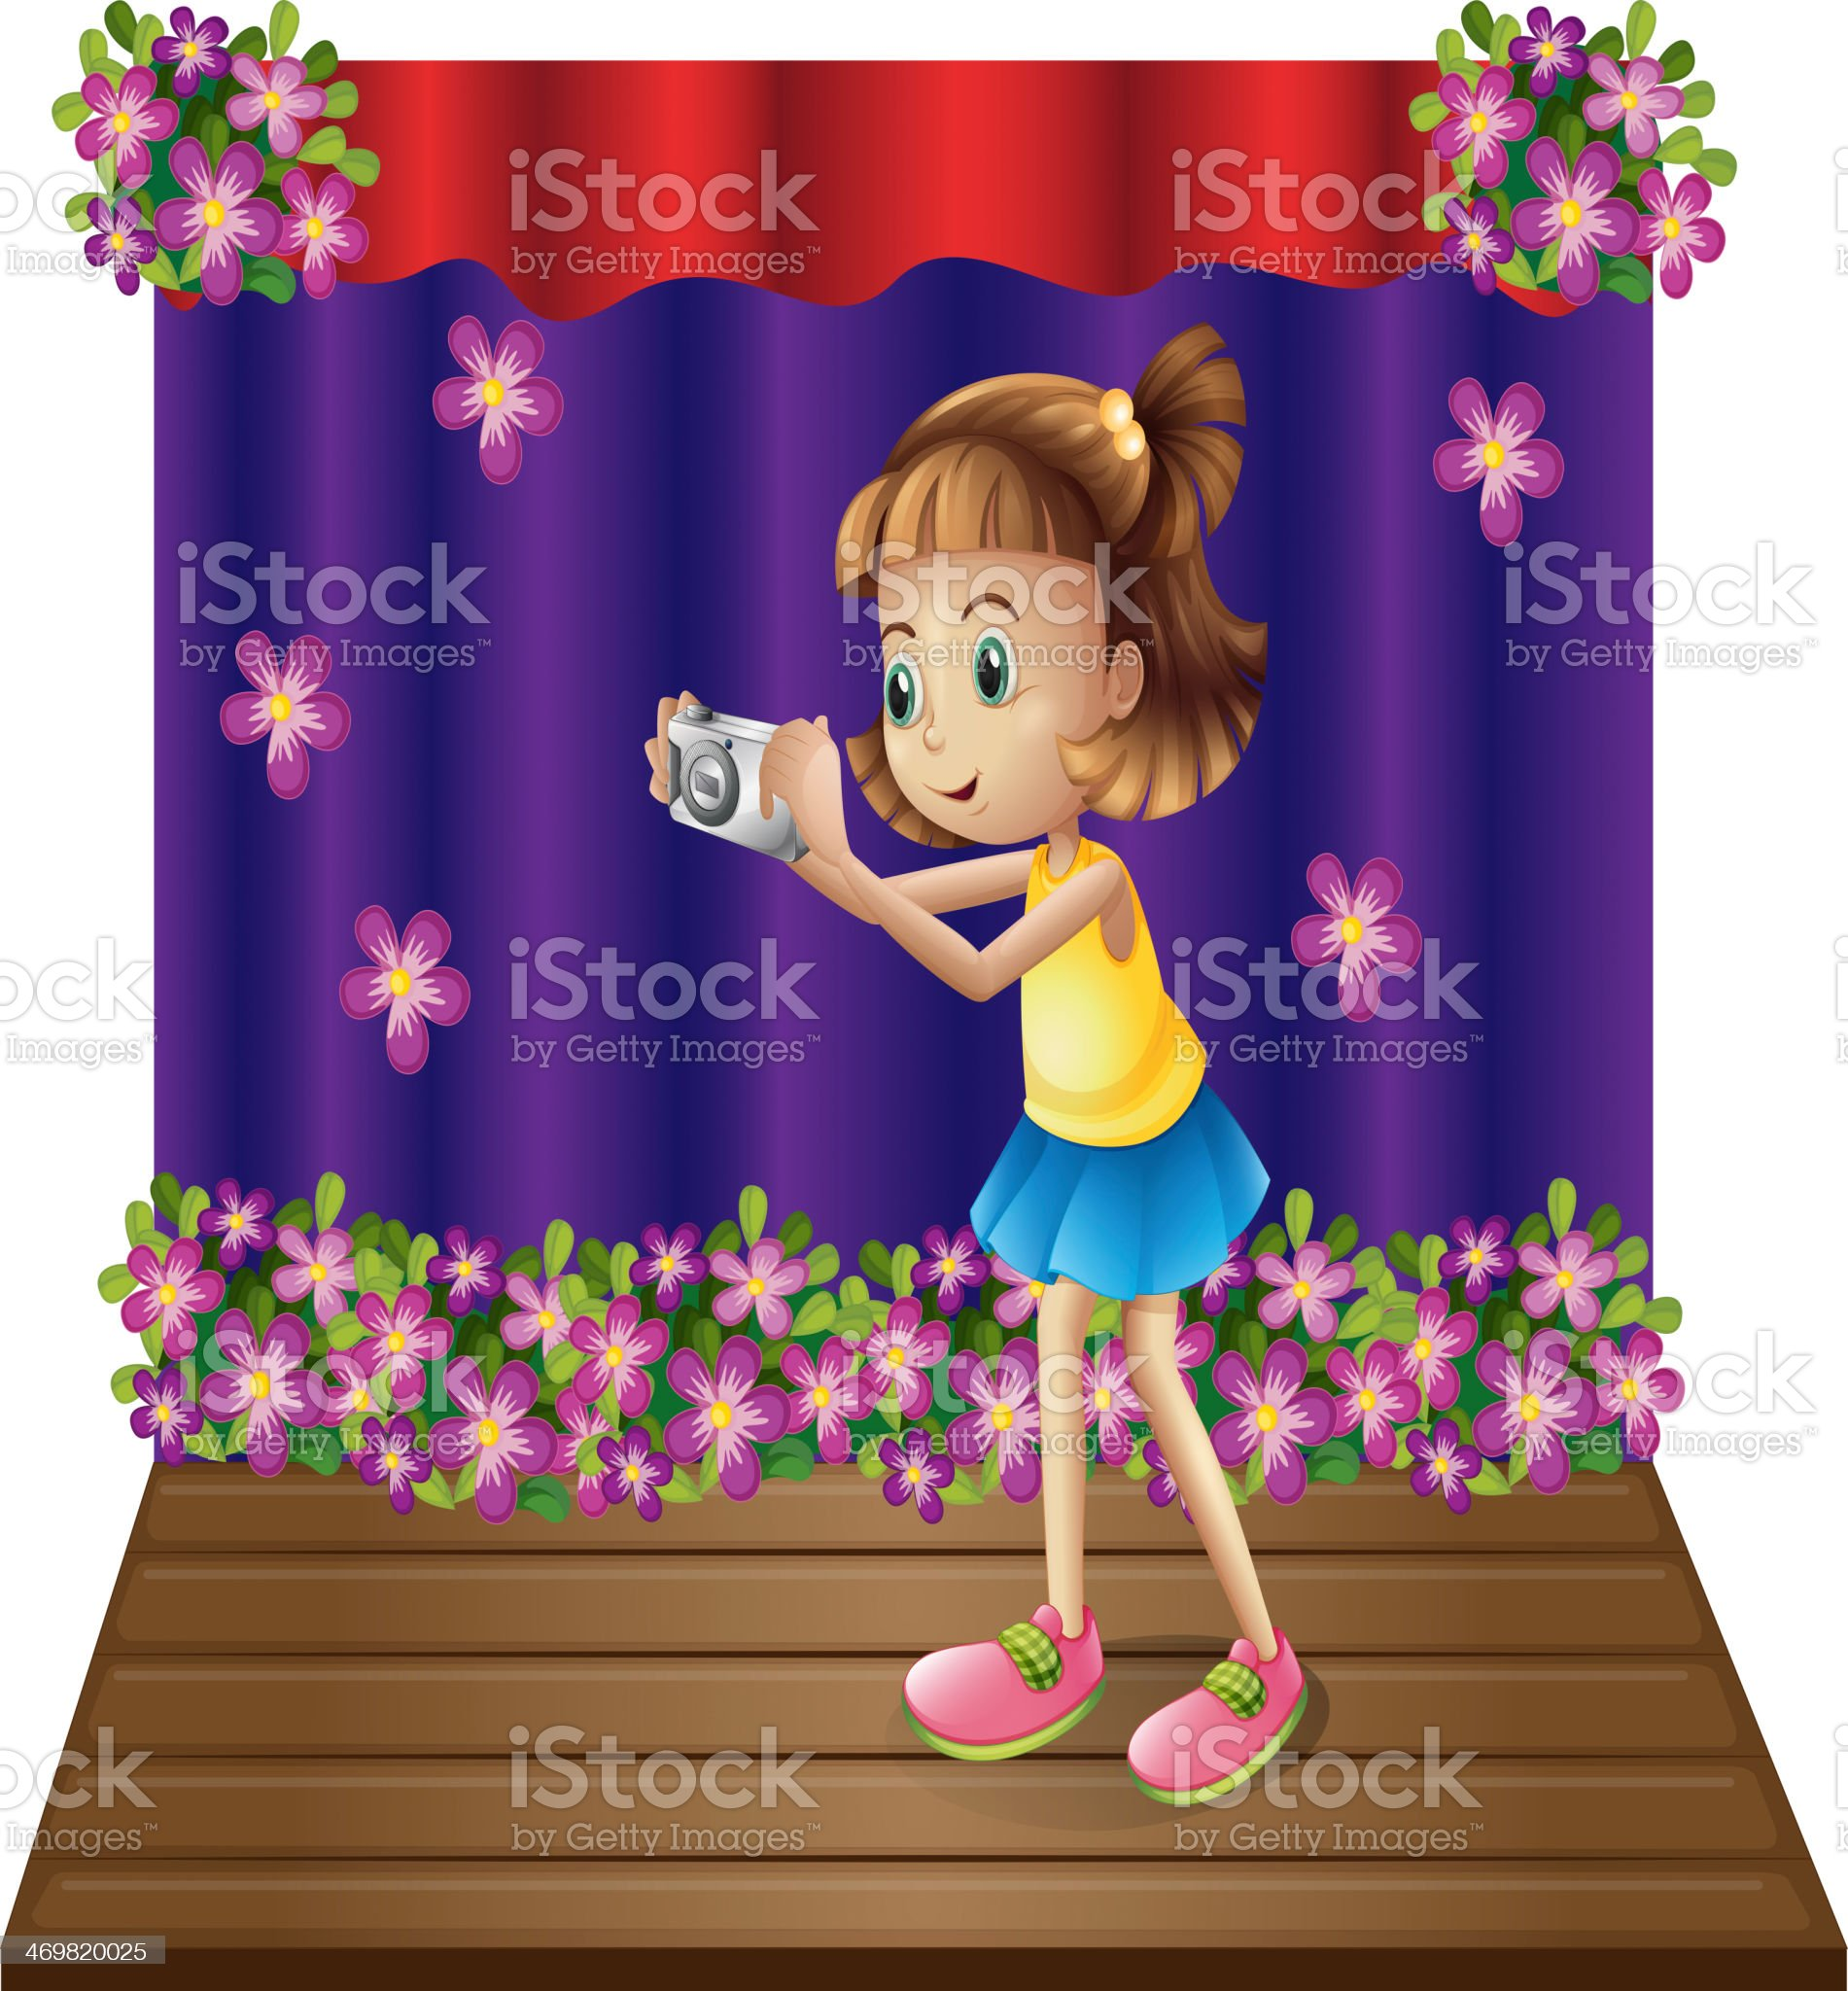 stage with young girl holding camera royalty-free stock vector art